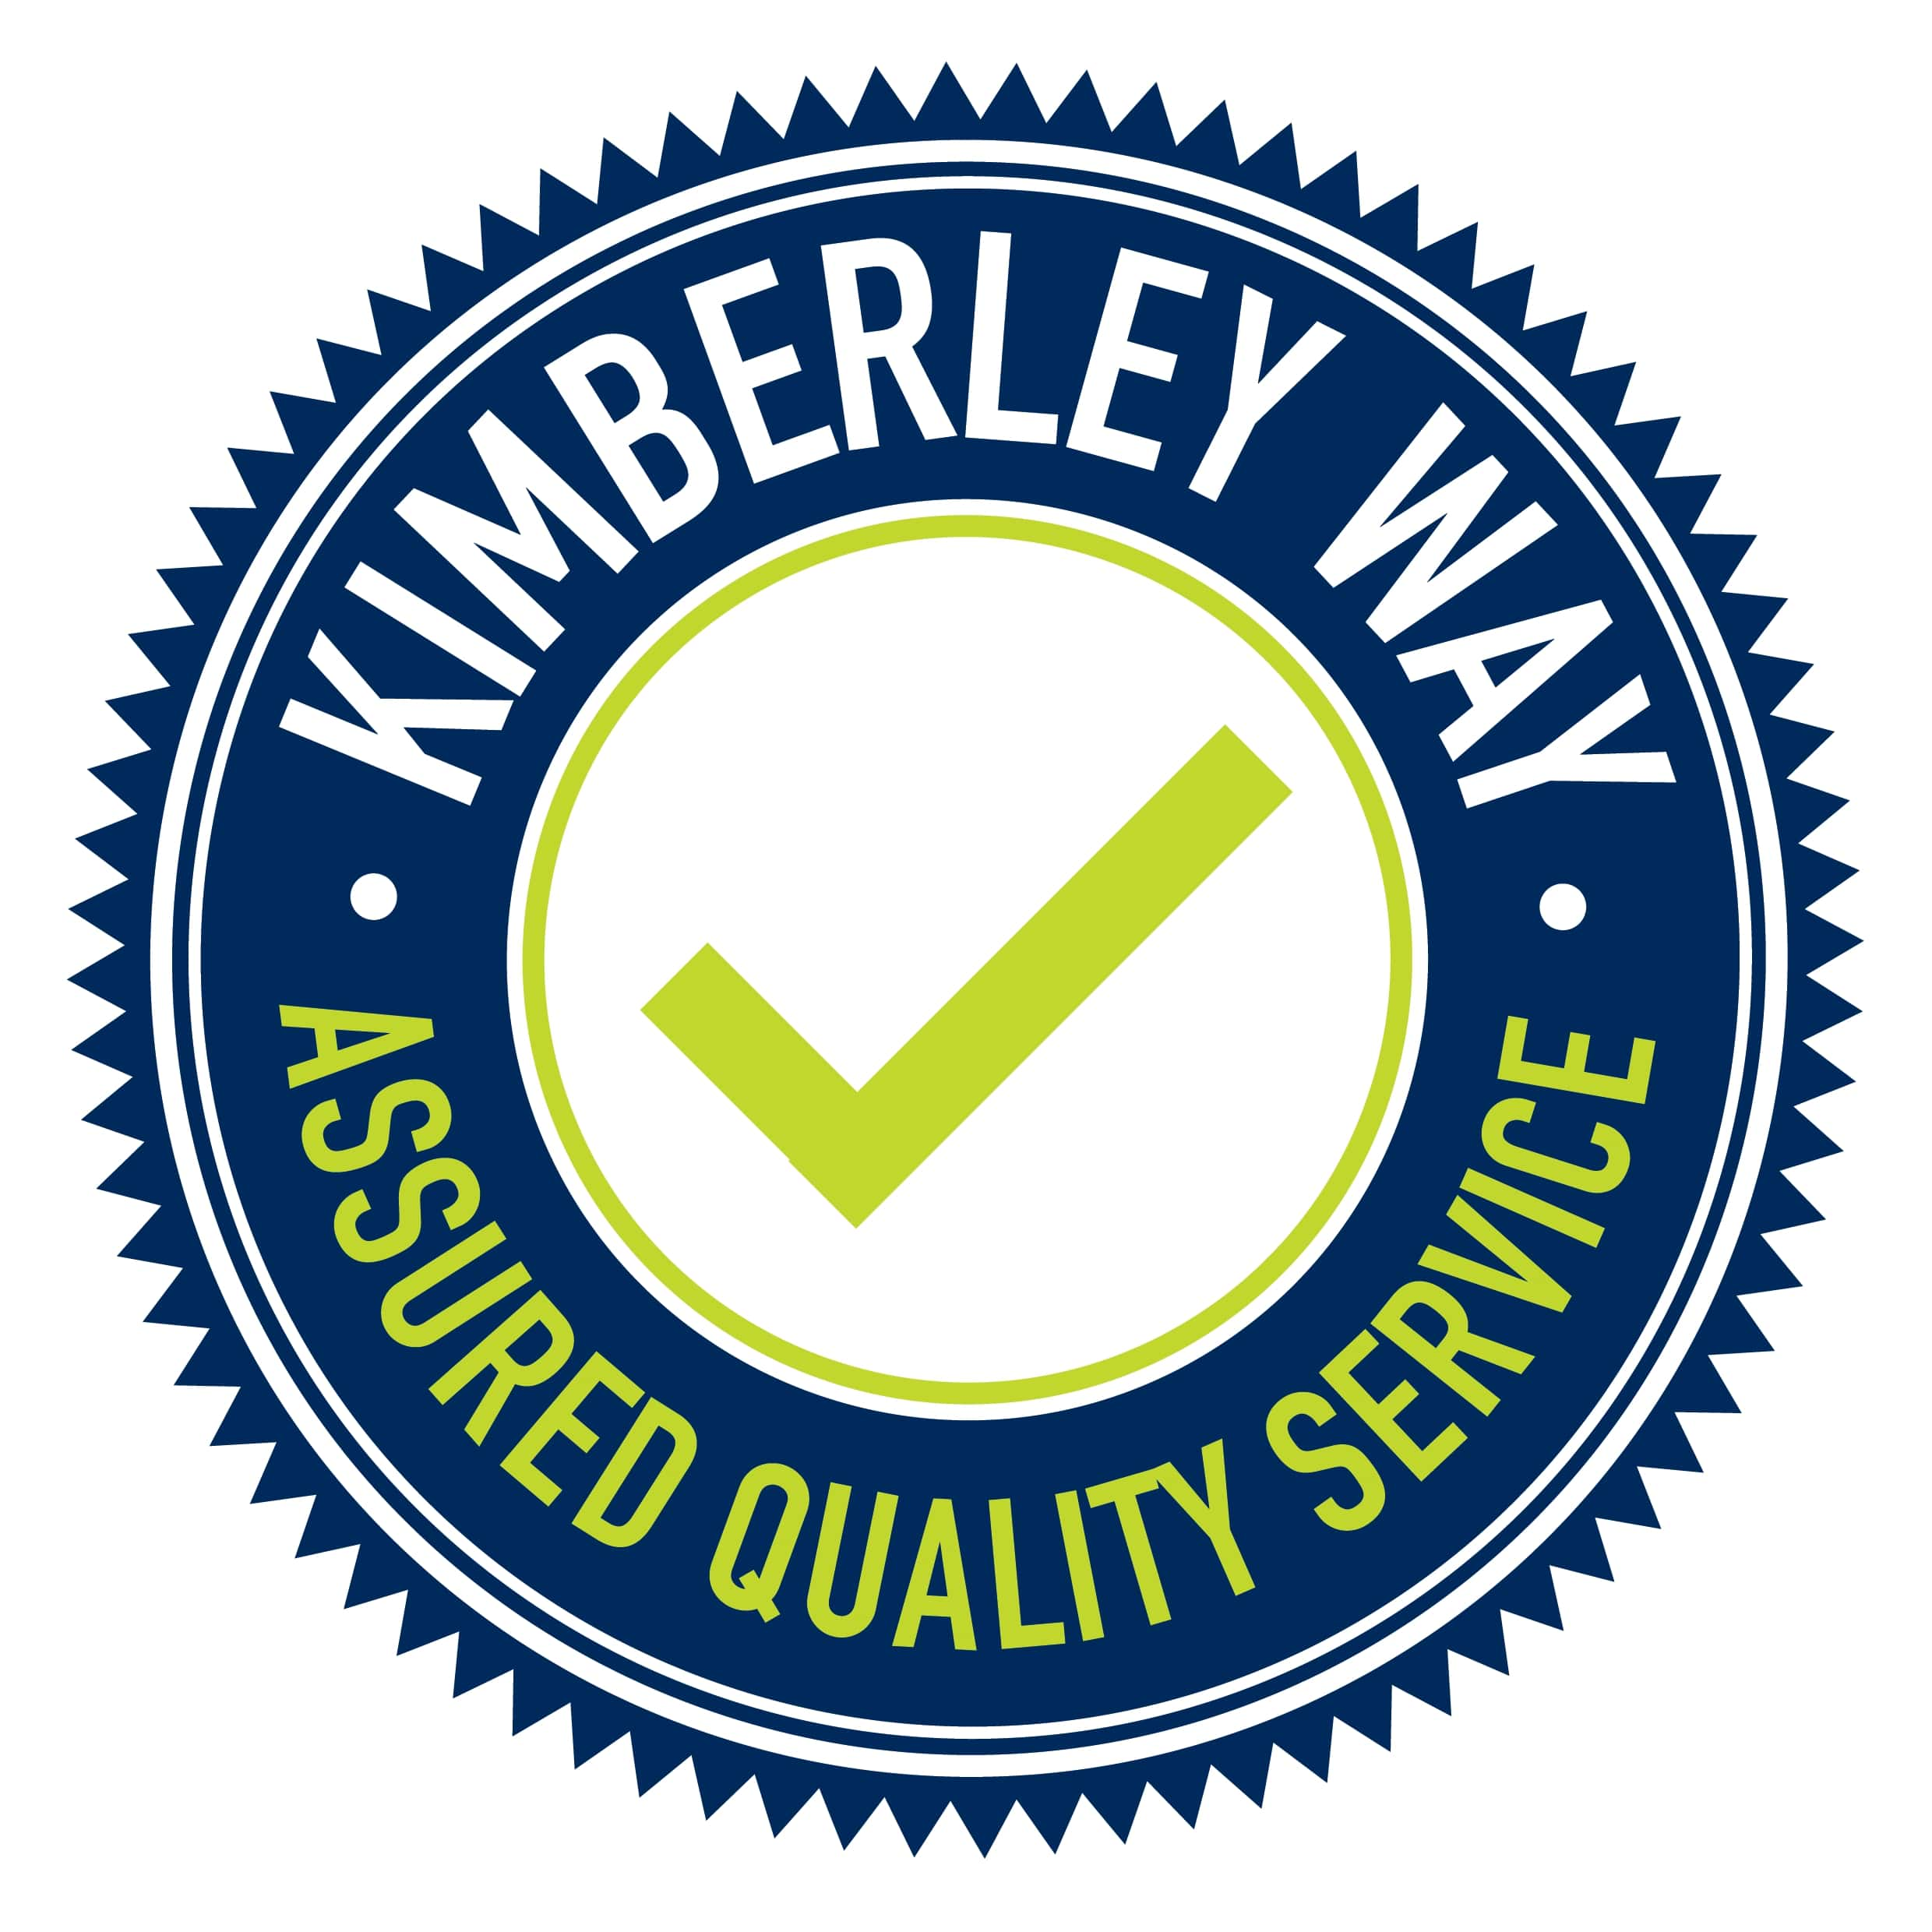 Kimberley Way Assured Quality Service